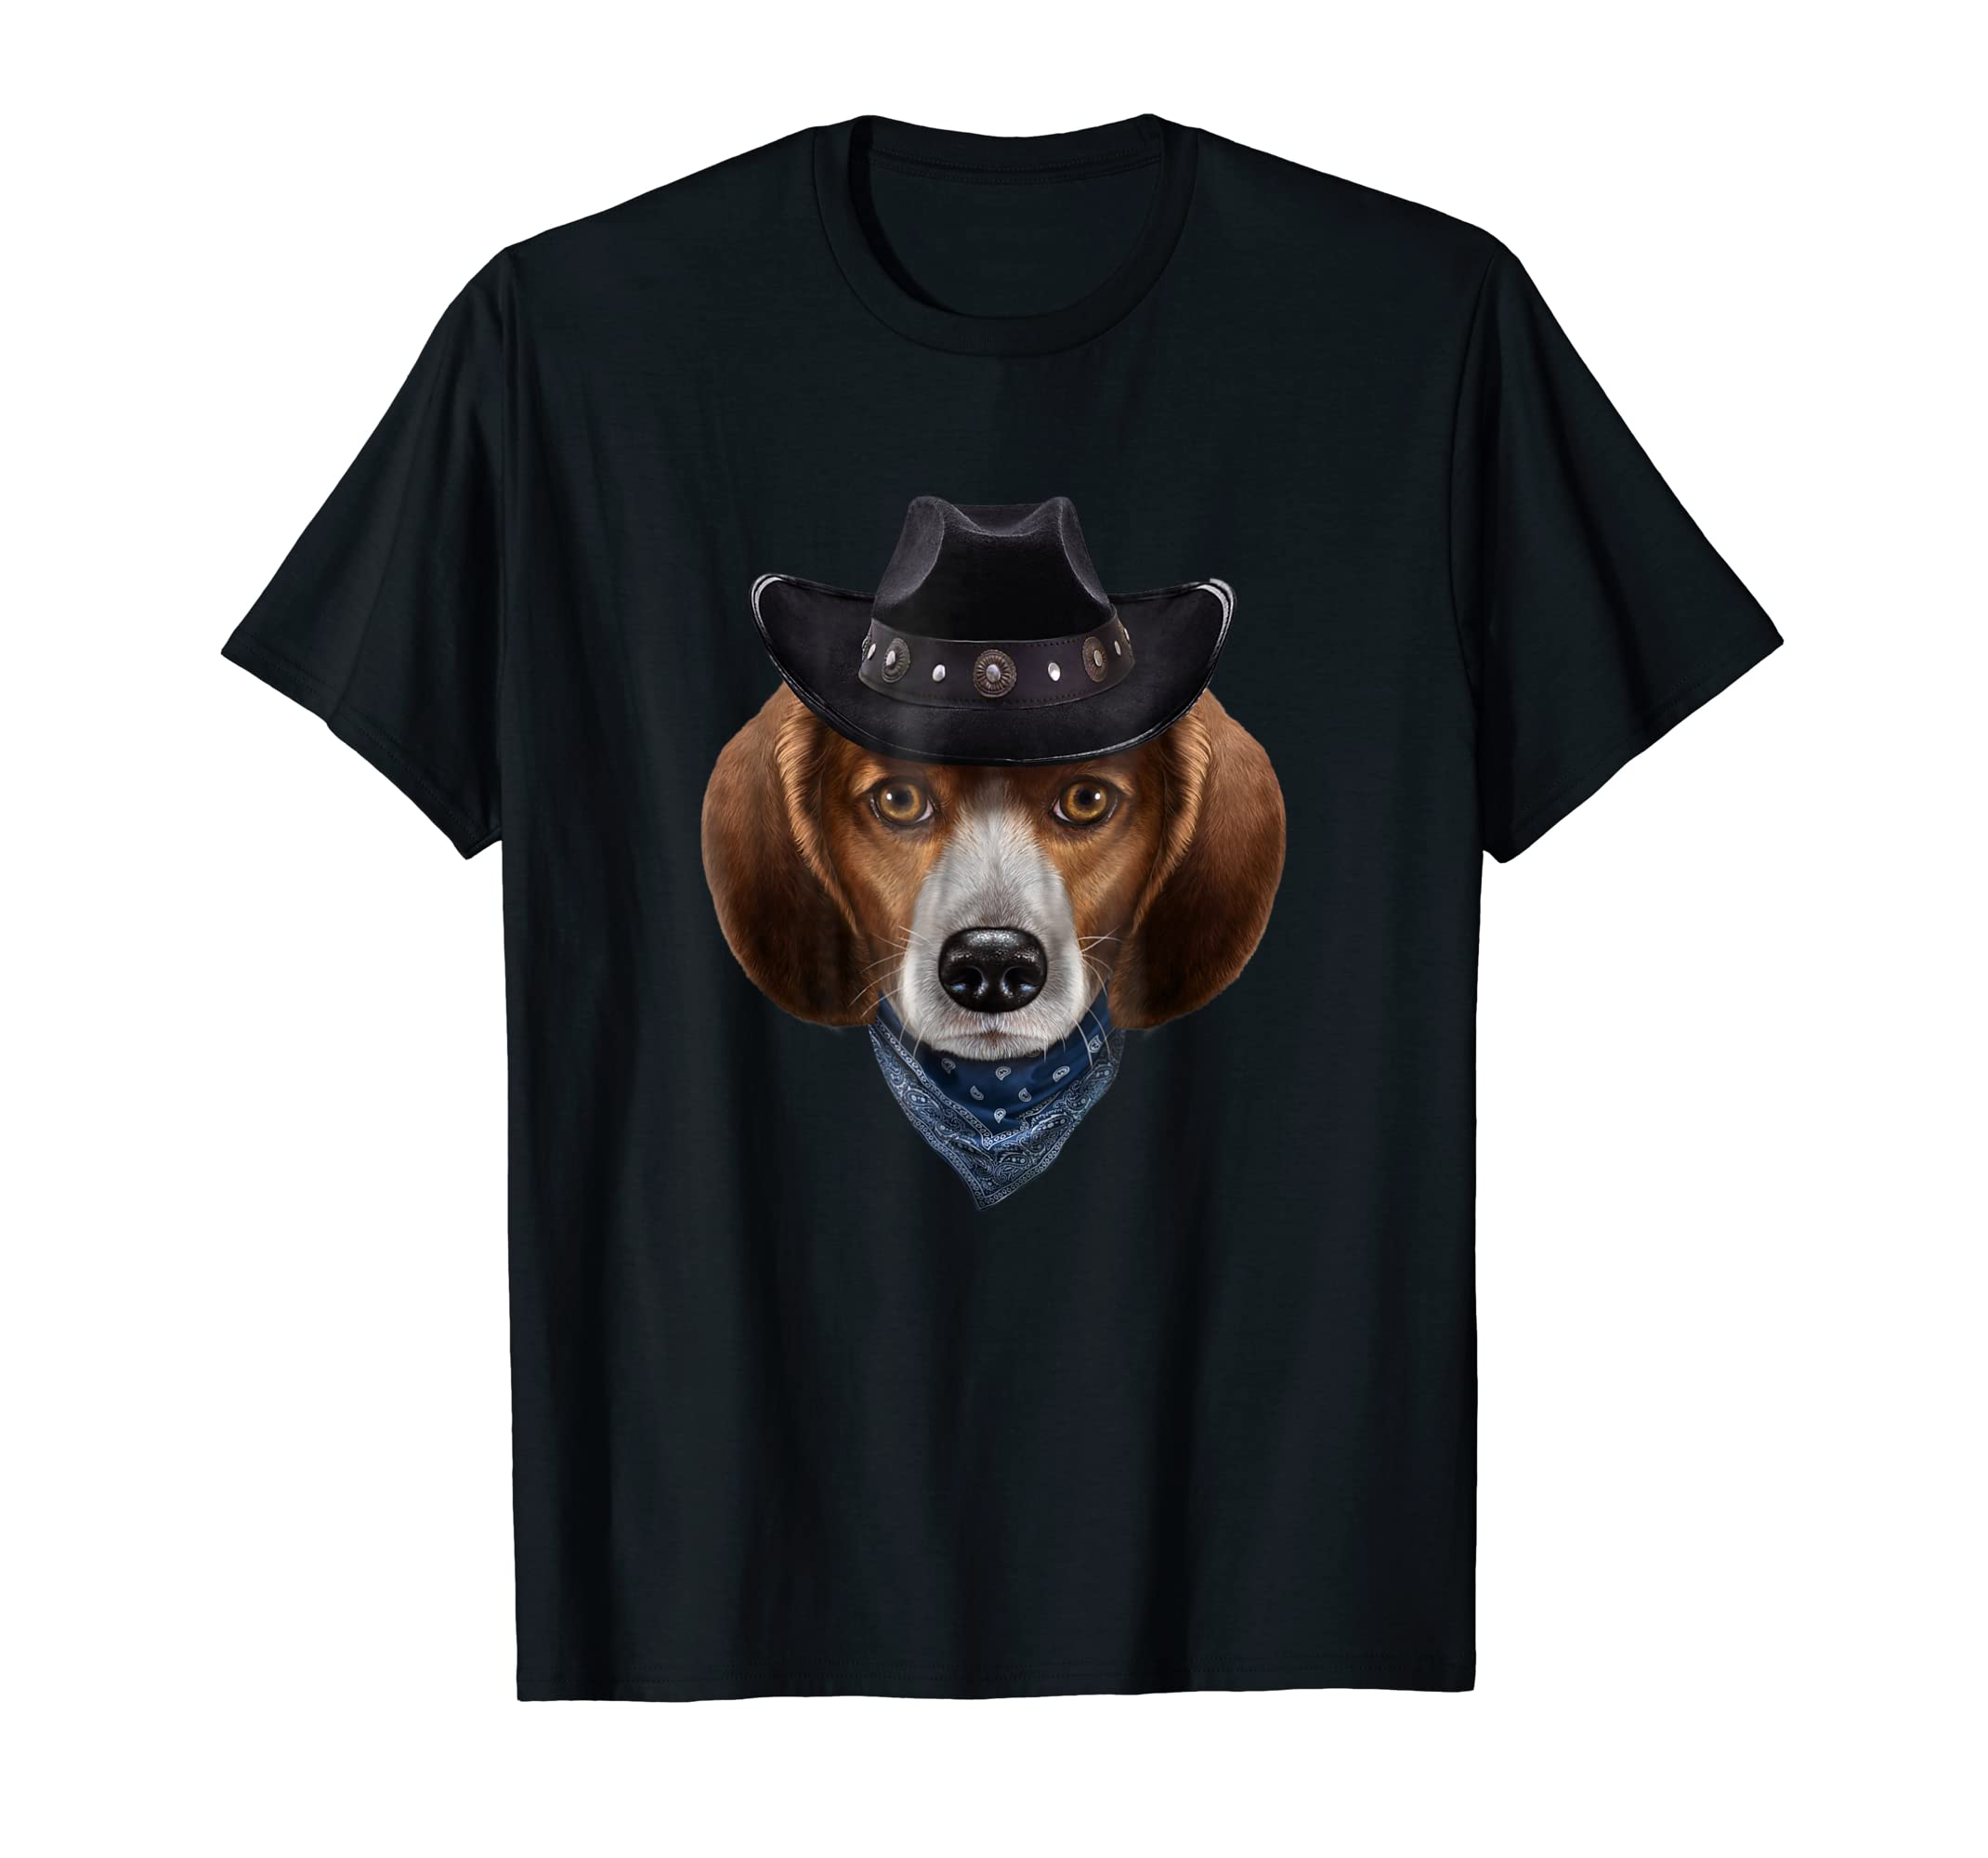 Beagle Dog in Cowboy Hat and Bandana, T-Shirt-Men's T-Shirt-Black